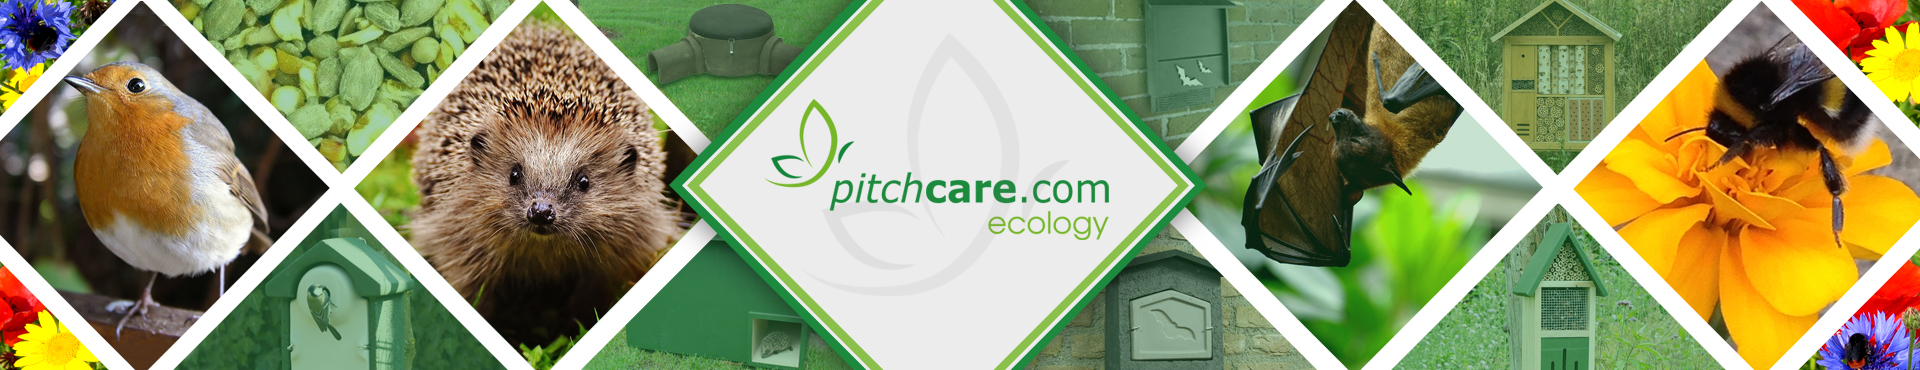 Ecology PC Shop Banner 3